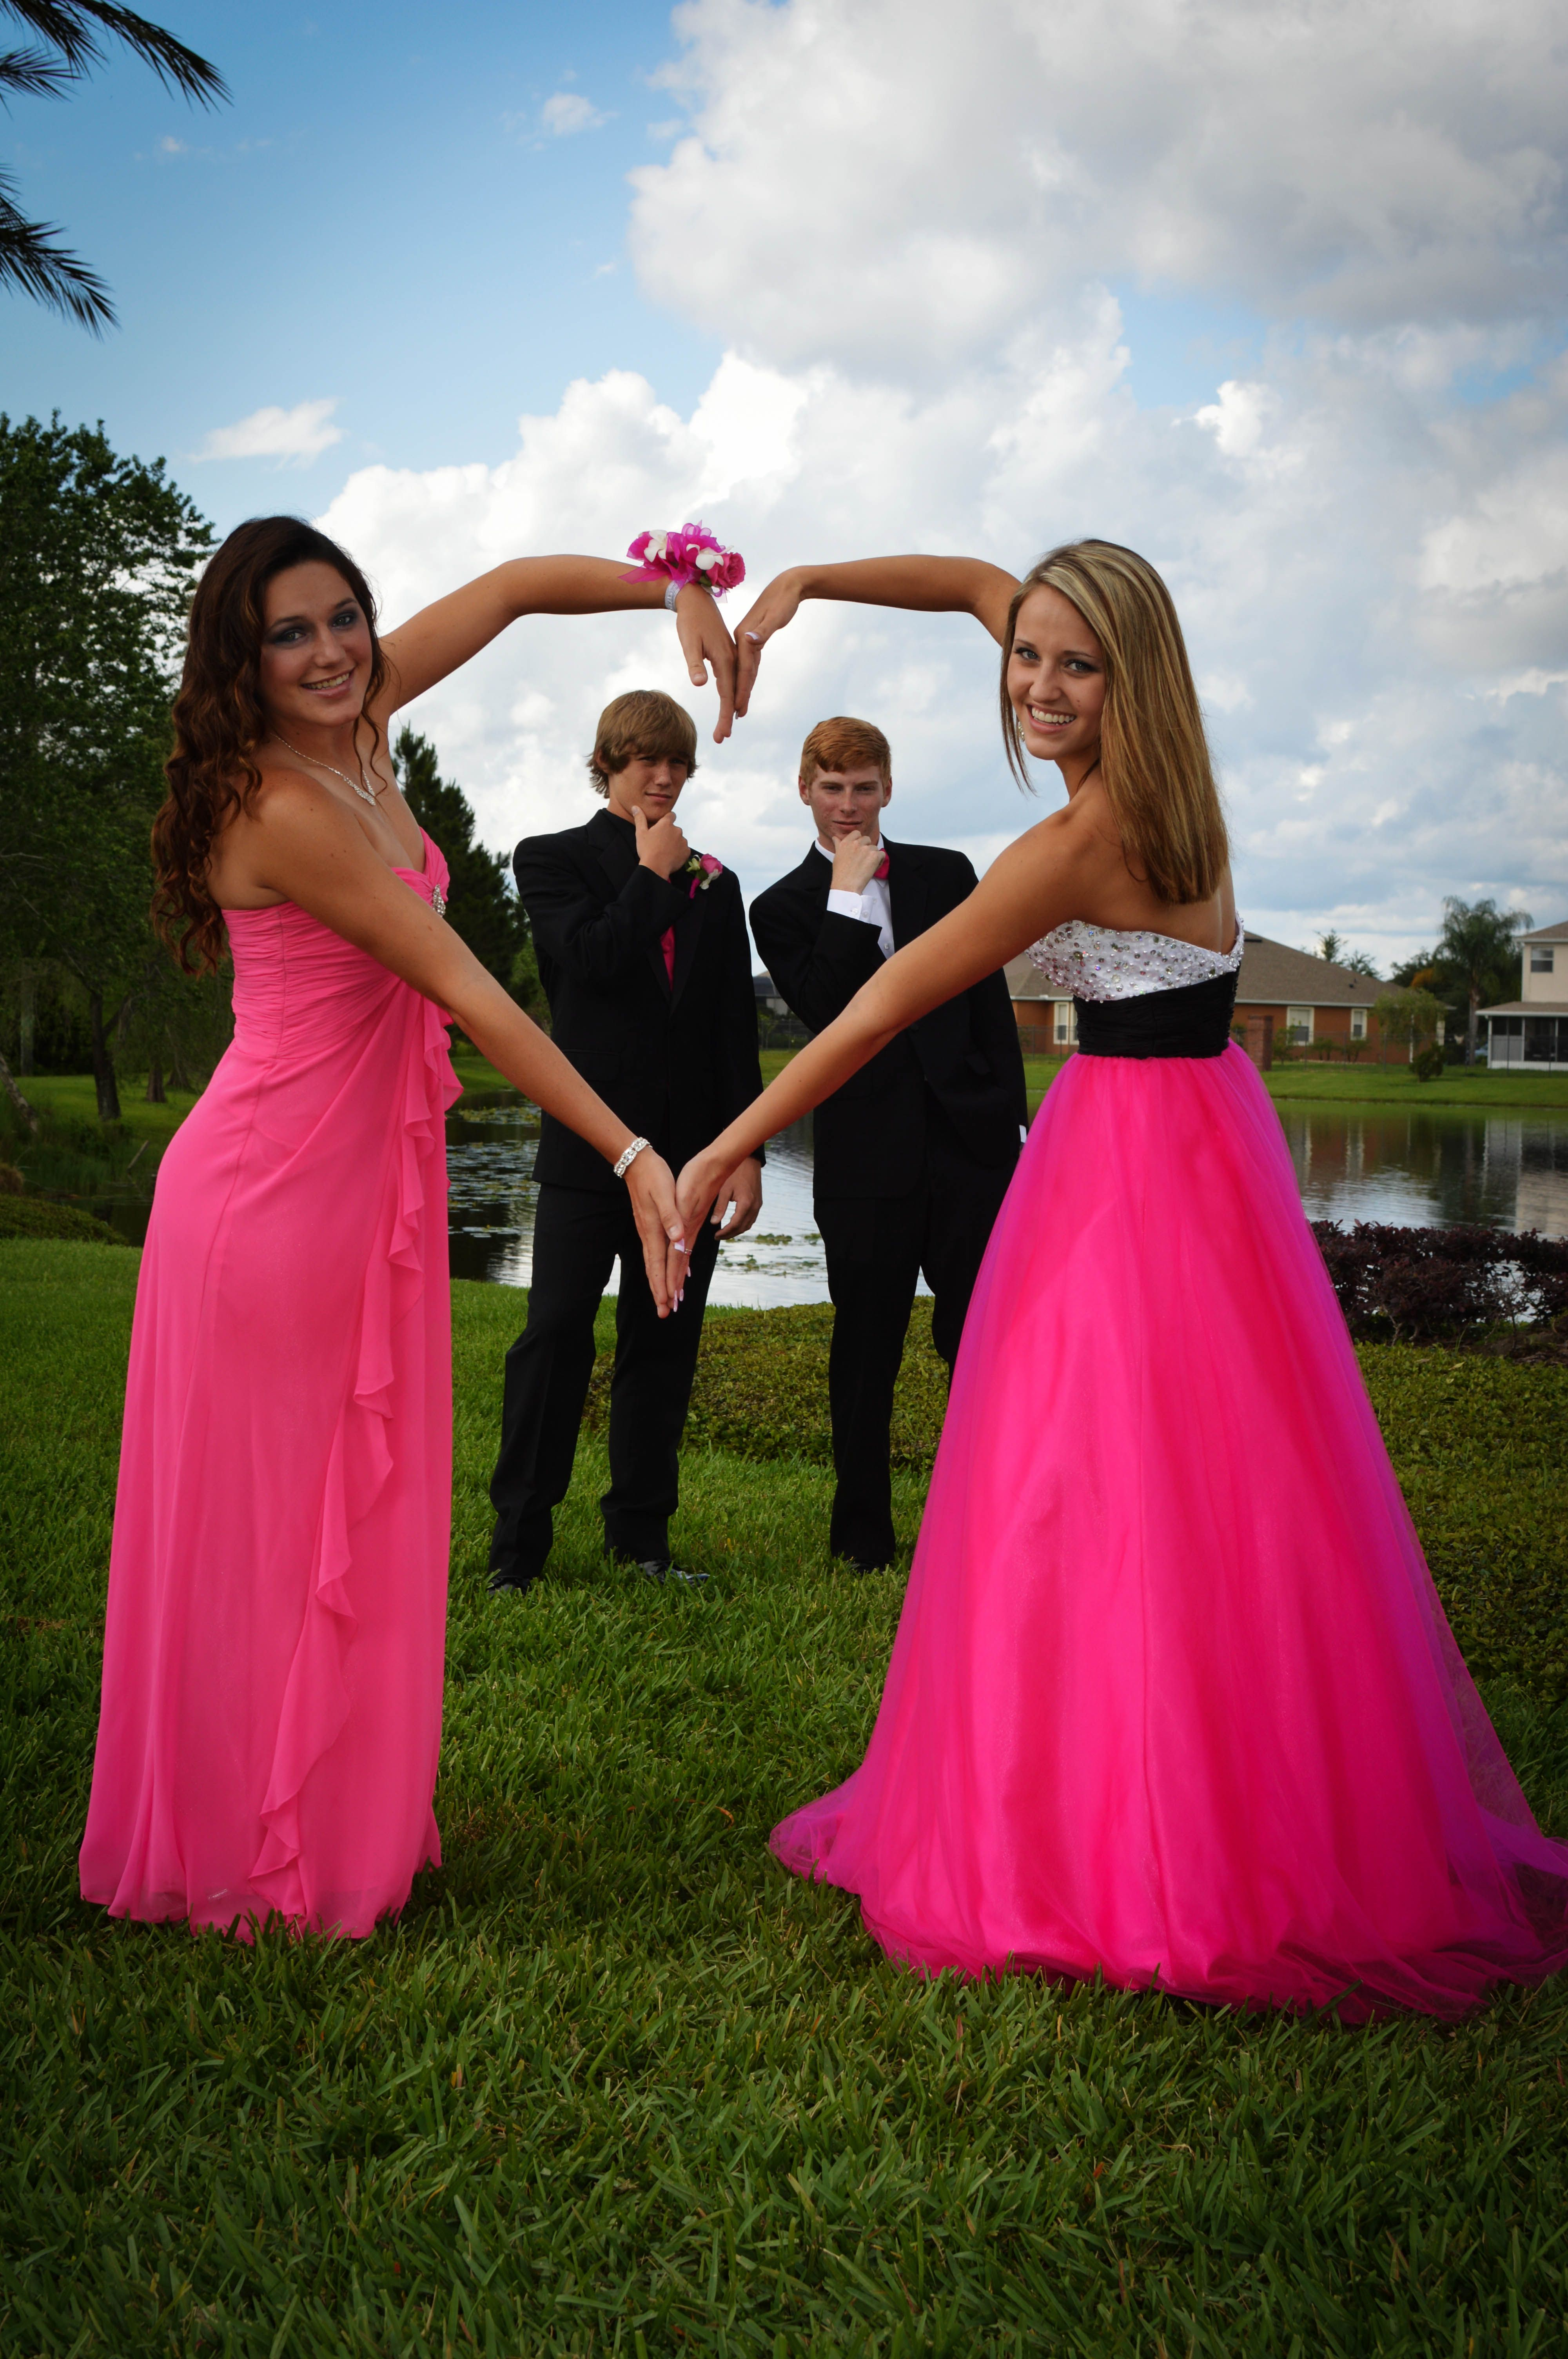 Prom pictures www.crystallynnphotography.org I can see this as a ...